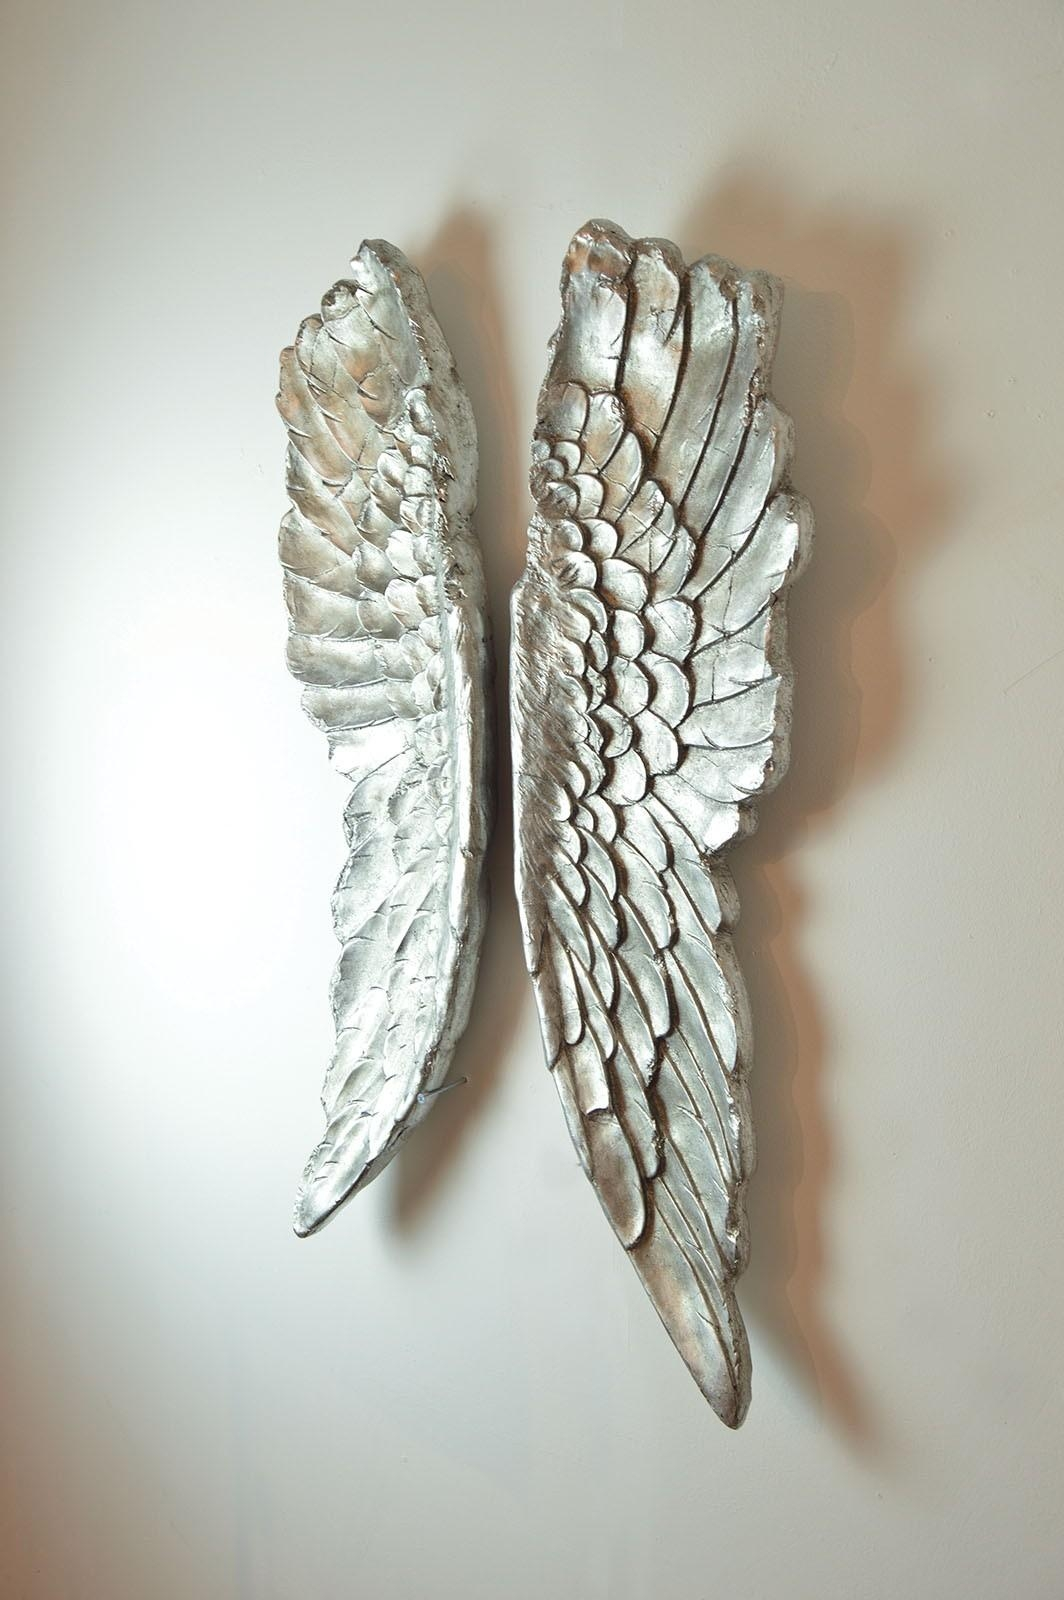 Angel Wings Wall Decor | Design Ideas And Decor Throughout Angel Wings Wall Art (View 2 of 20)